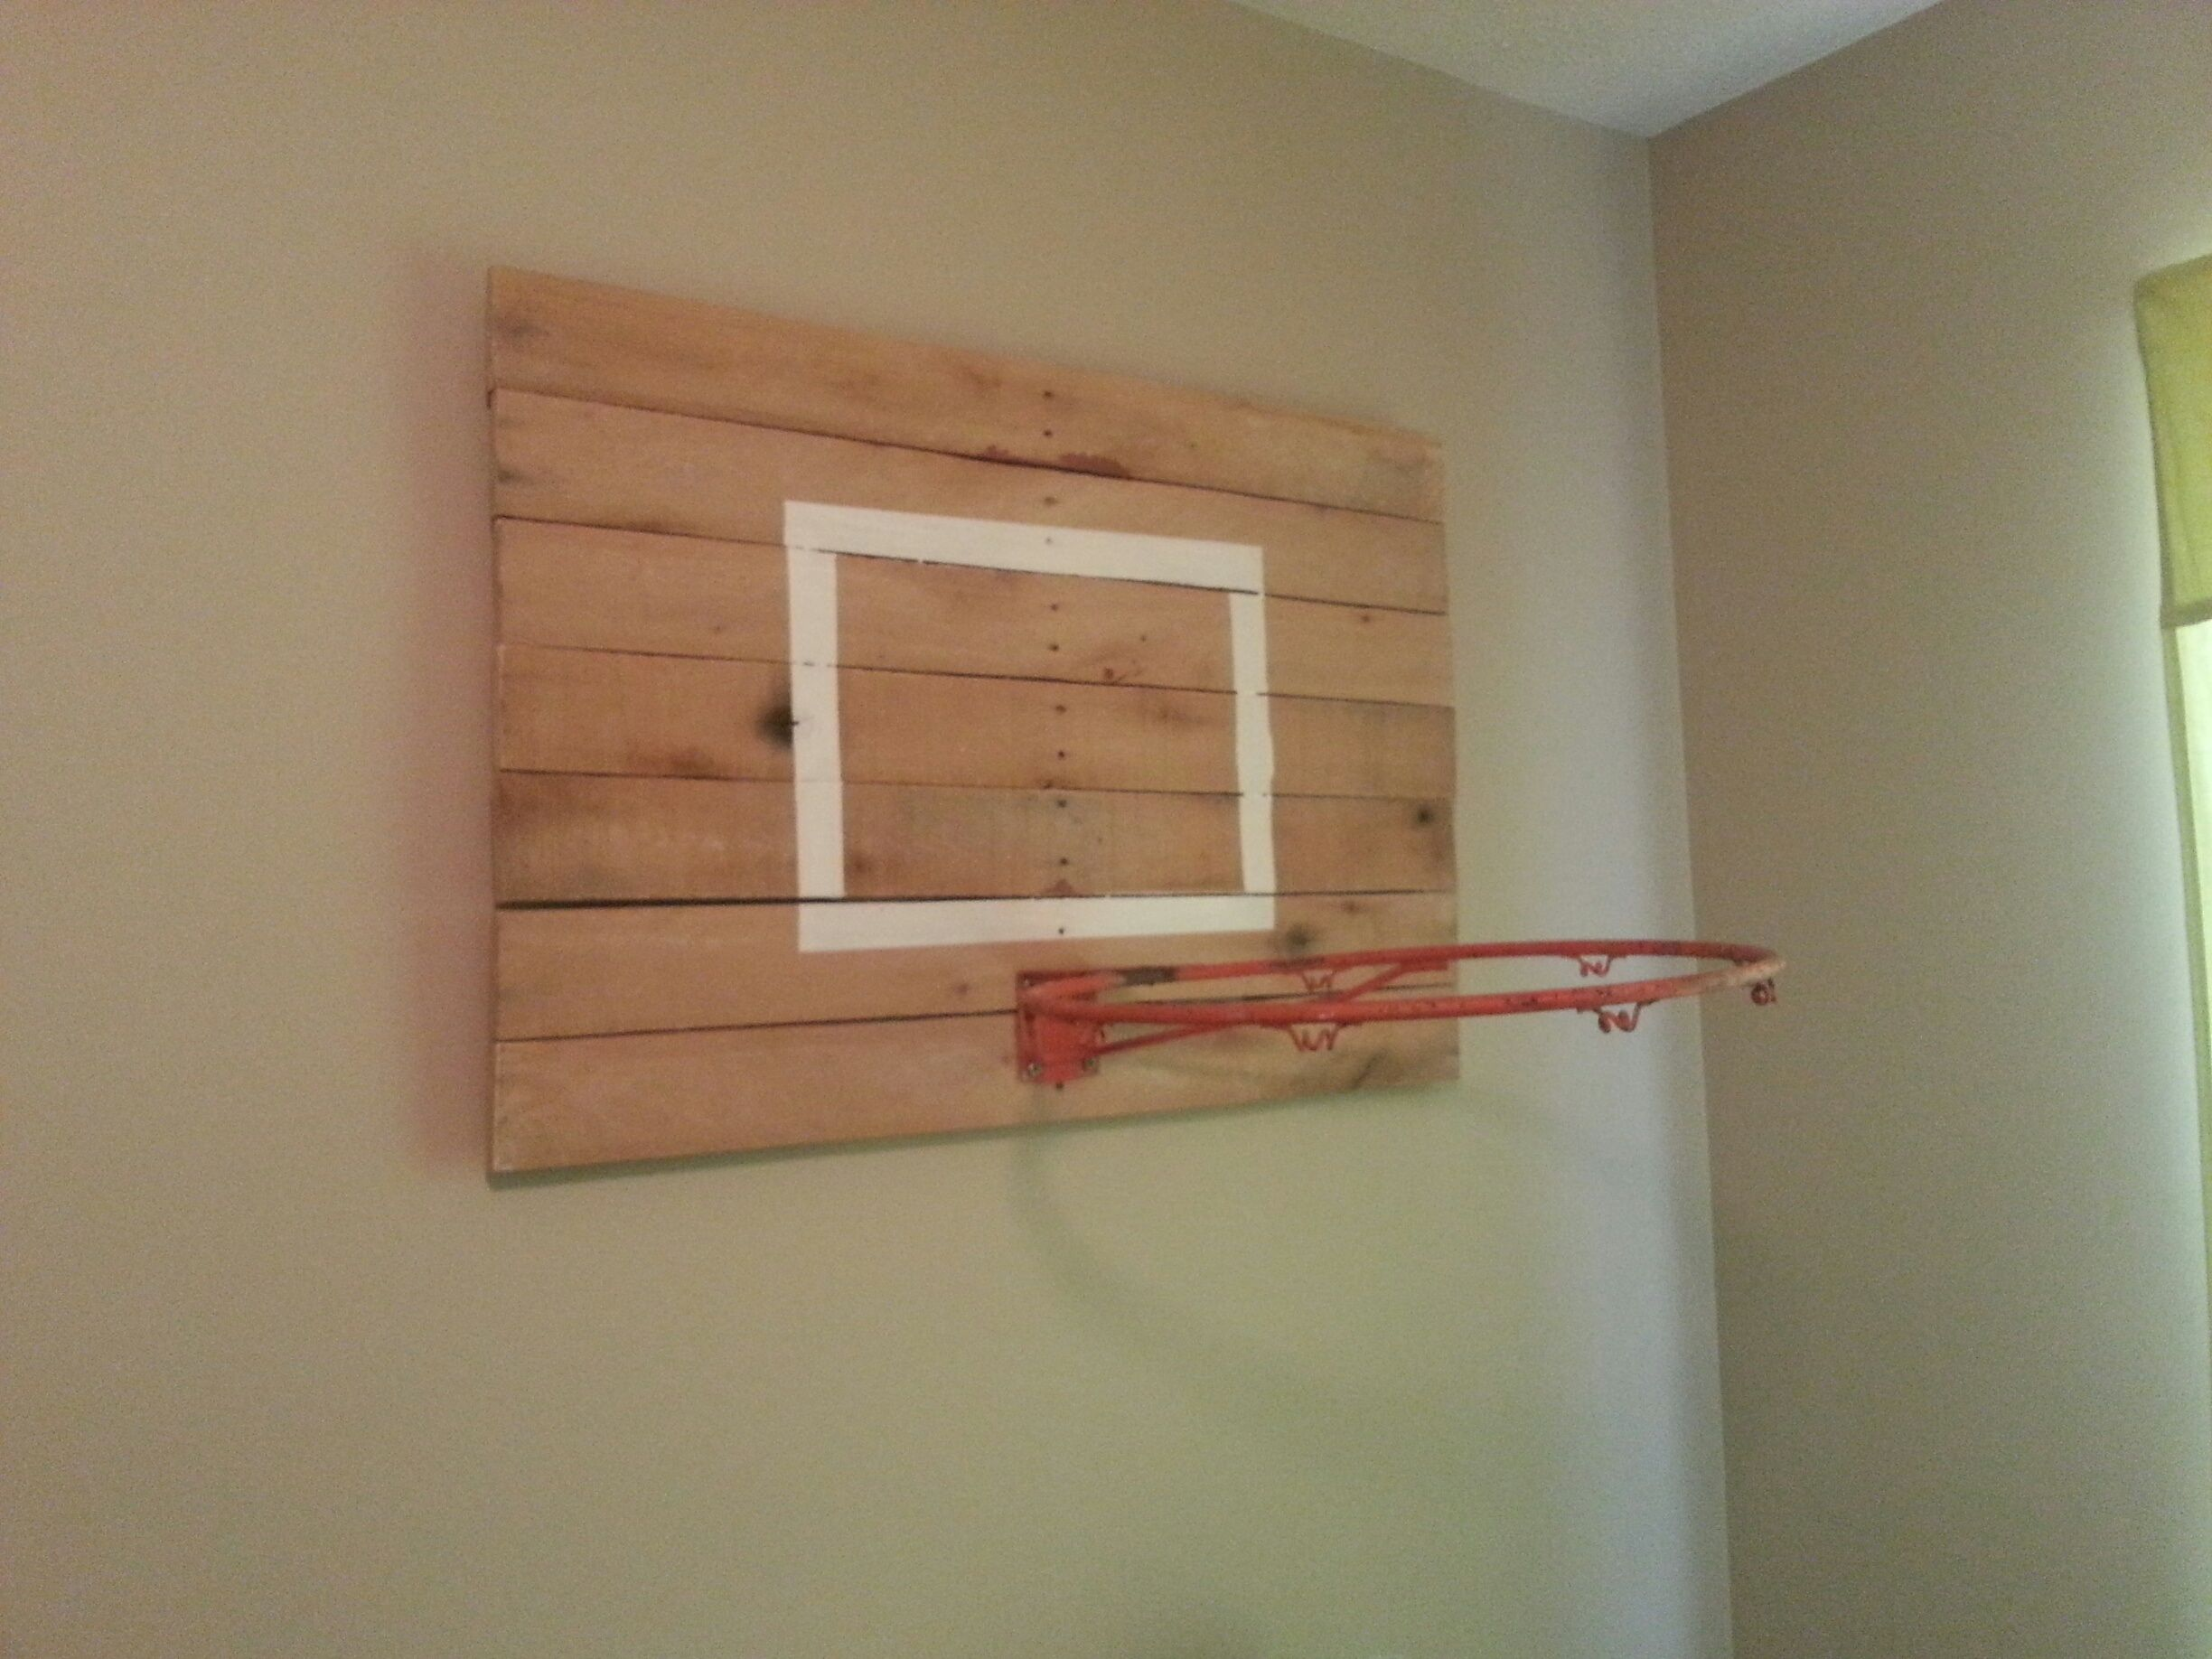 Vintage Modern Sports Bedroom  Basketball Nets Laundry And Room New Basketball Hoop For Bedroom Decorating Inspiration